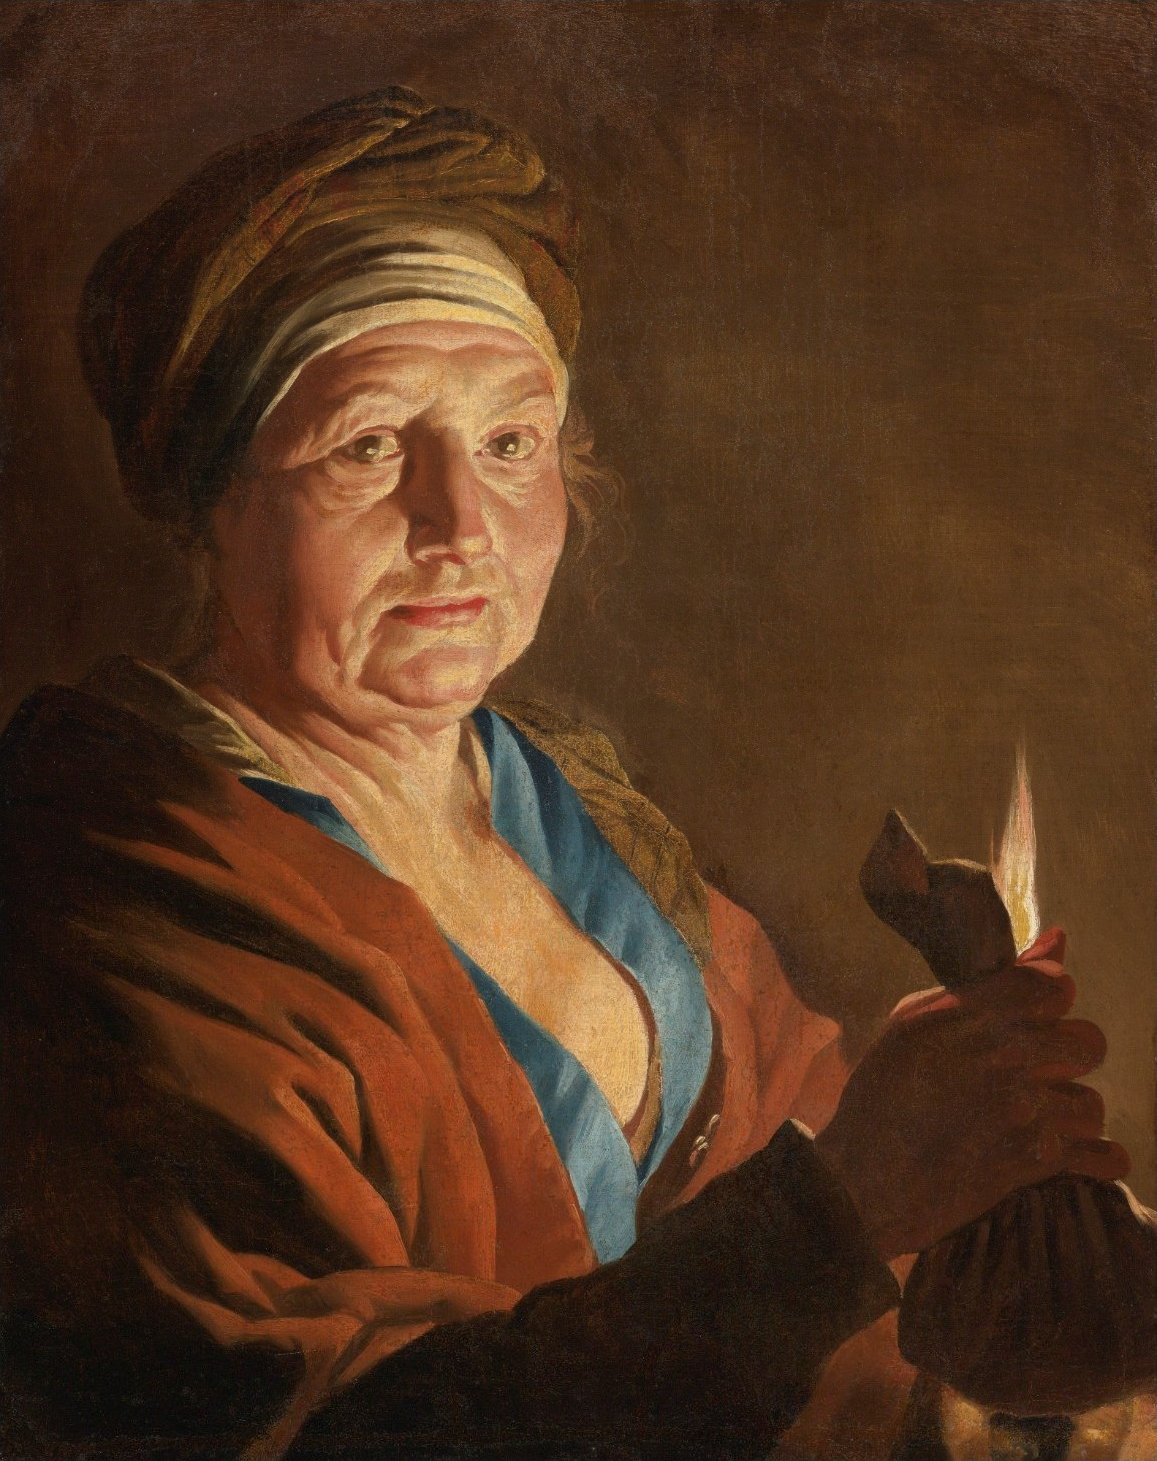 An Old Woman Holding a Purse by Candlelight by Matthias Stomer